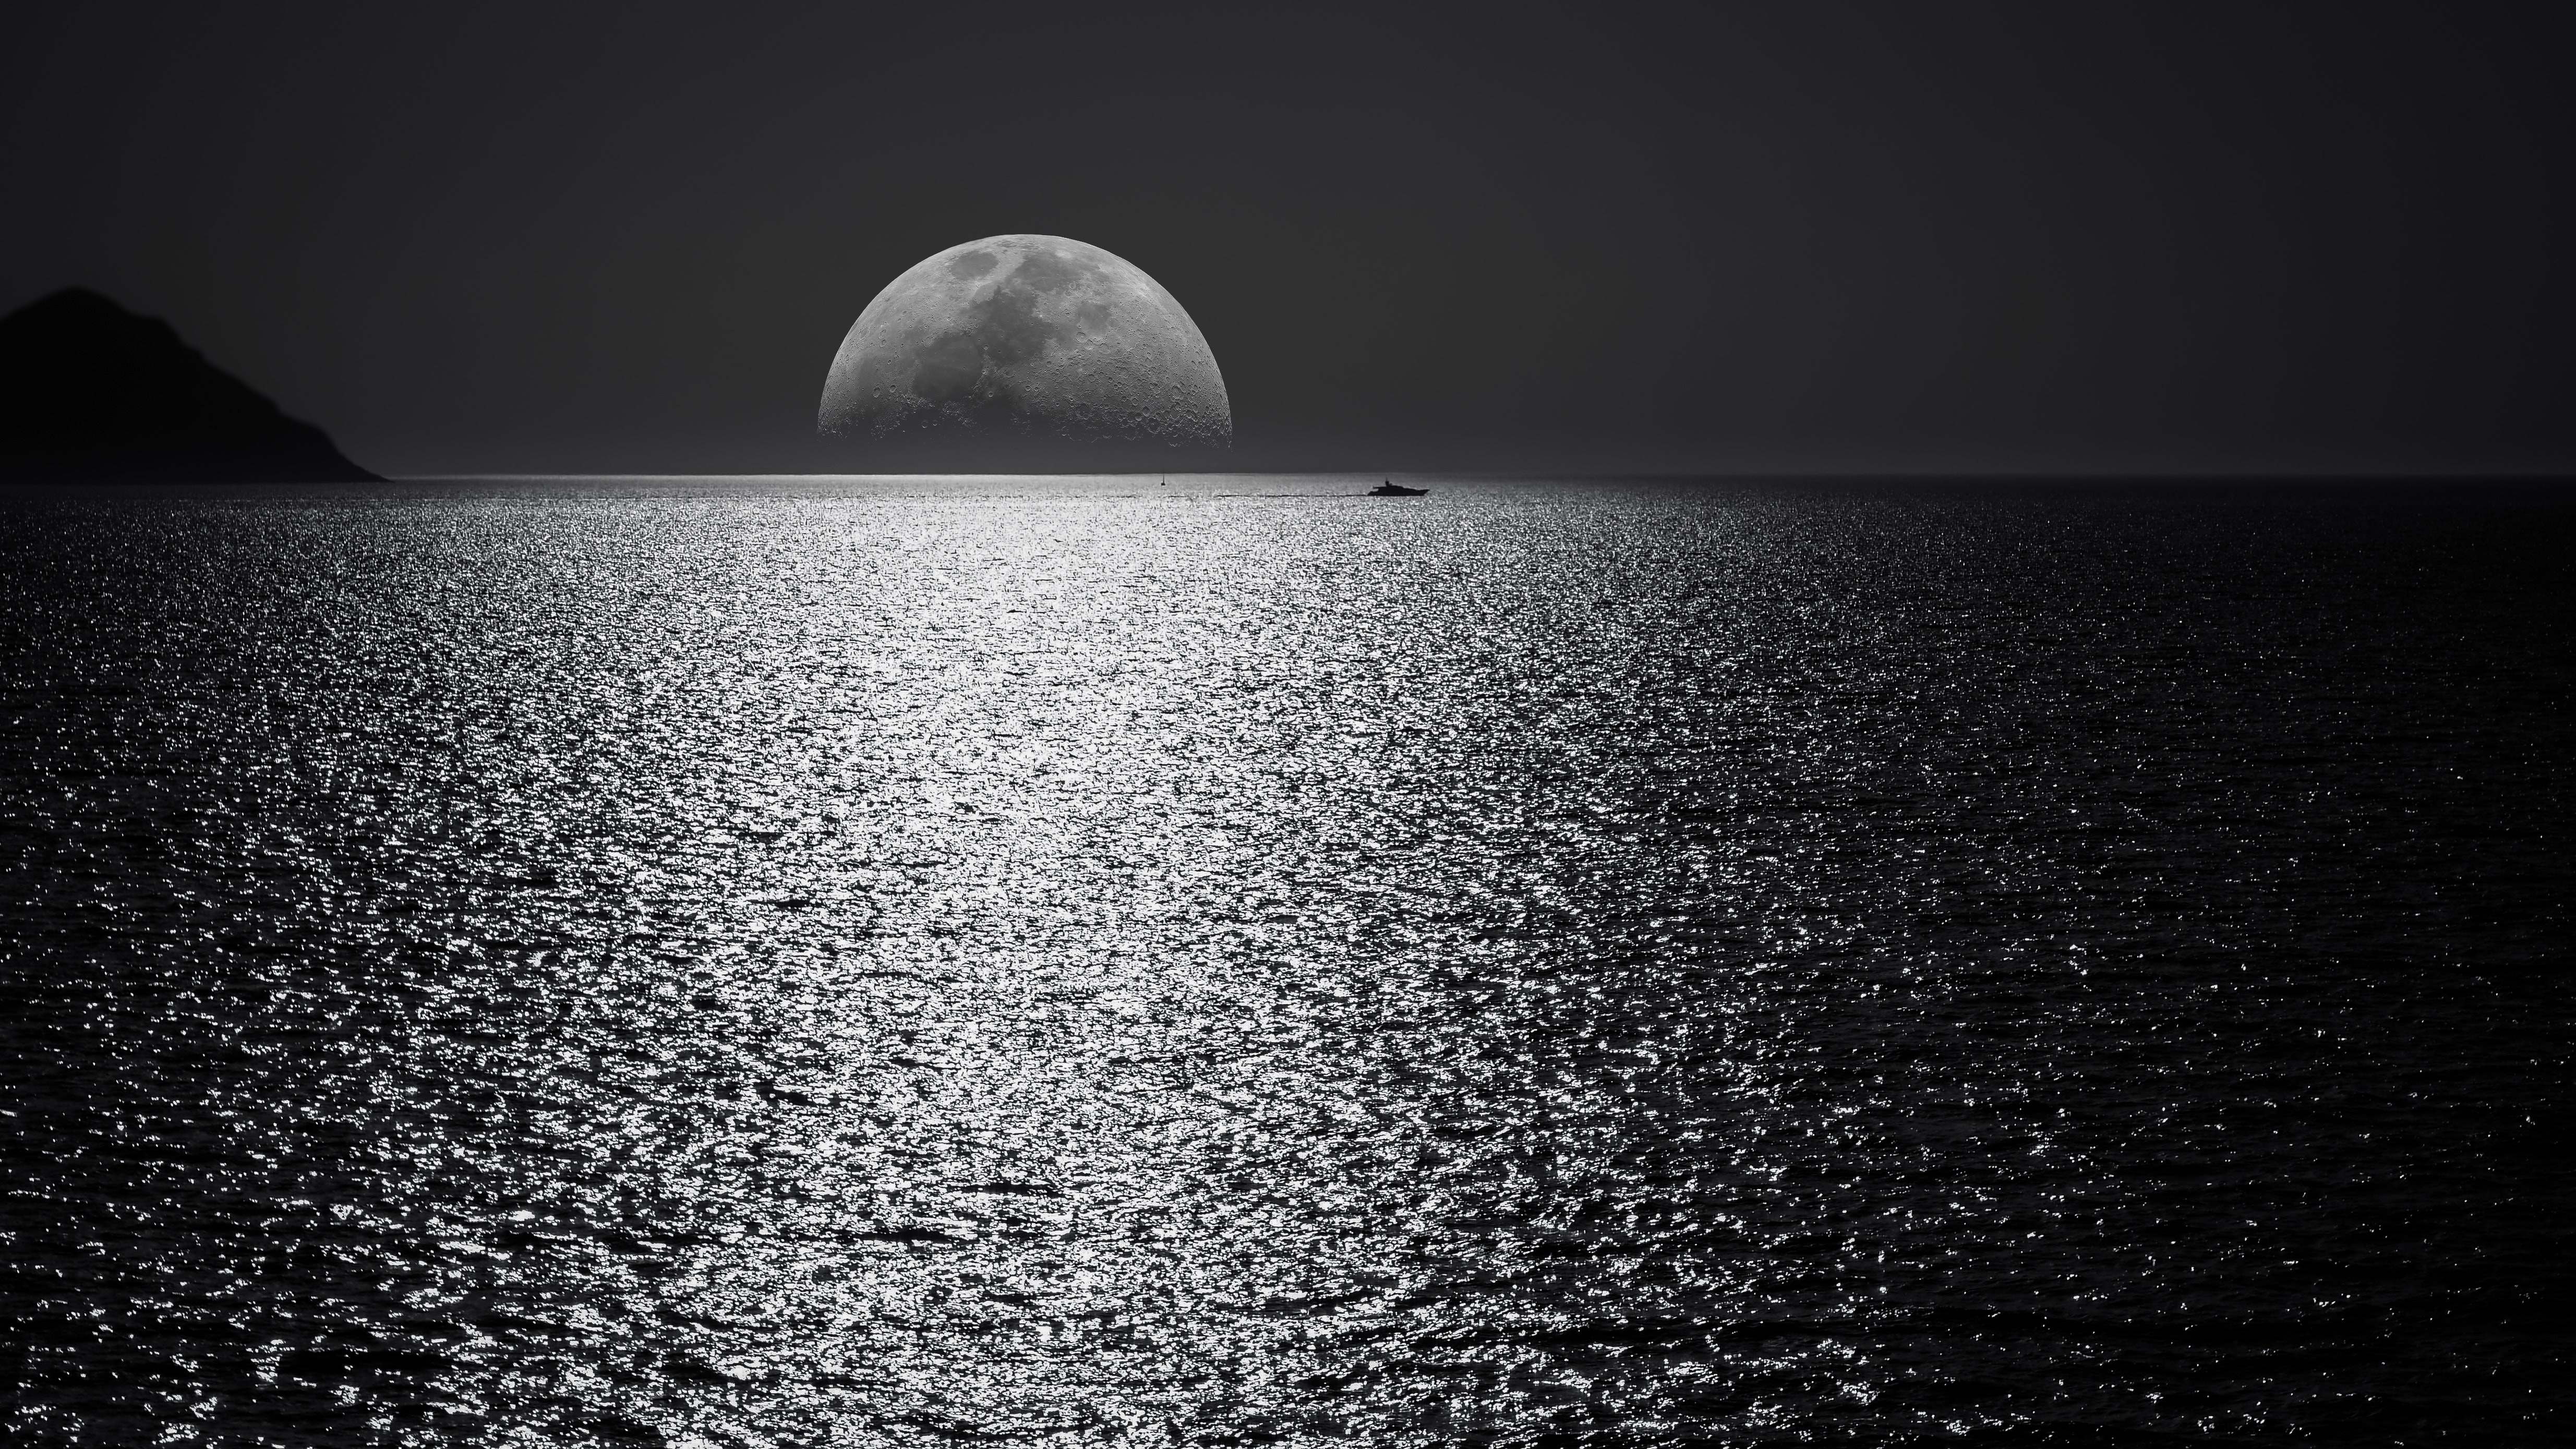 White Black Moon Evening Night Time Seascape 5k Hd Nature 4k Wallpapers Images Backgrounds Photos And Pictures